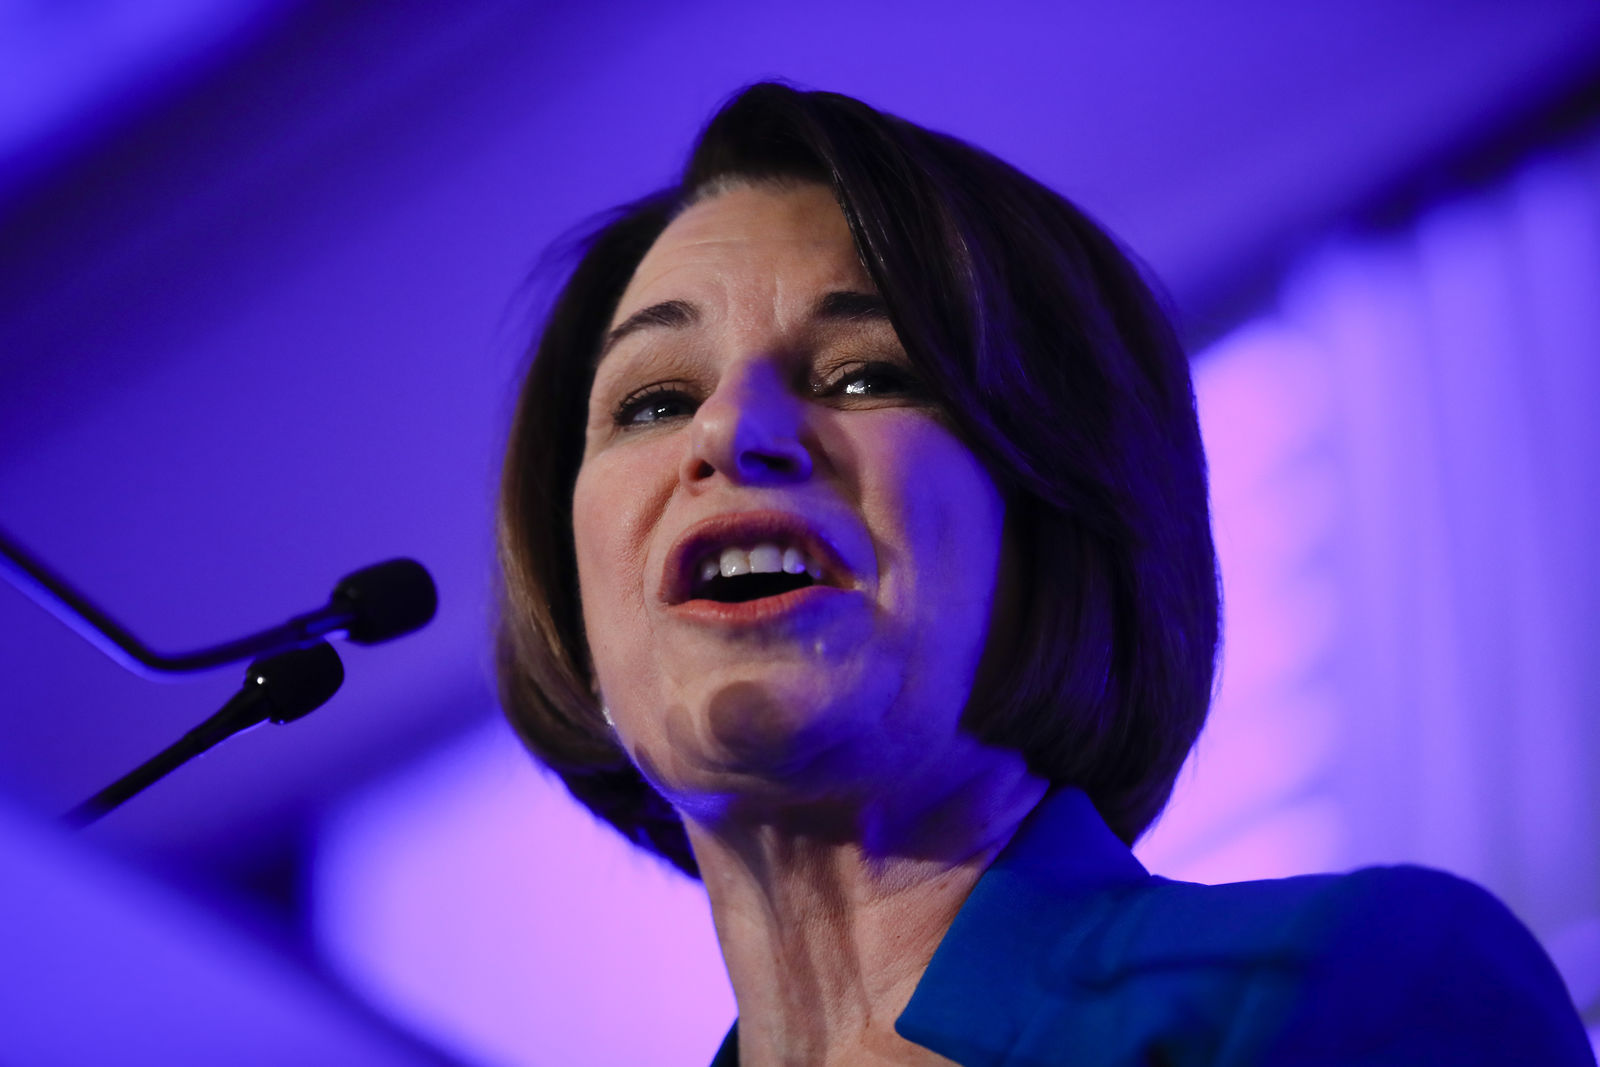 Democratic presidential candidate Sen. Amy Klobuchar, D-Minn speaks at the First in the South Dinner, Monday, Feb. 24, 2020, in Charleston, S.C. (AP Photo/Matt Rourke)